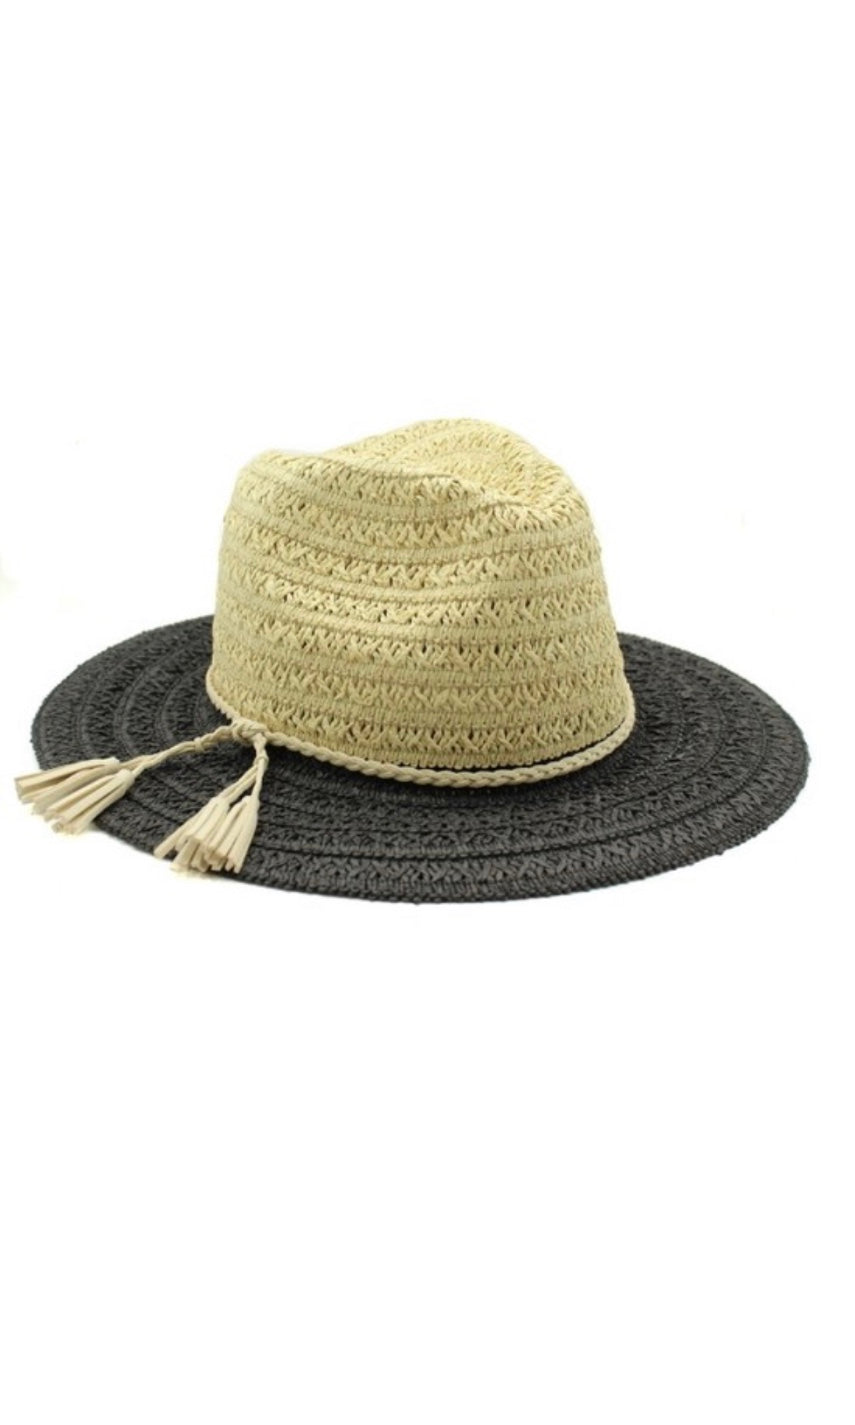 Boho Natural & Black Brim Panama Sun Hat